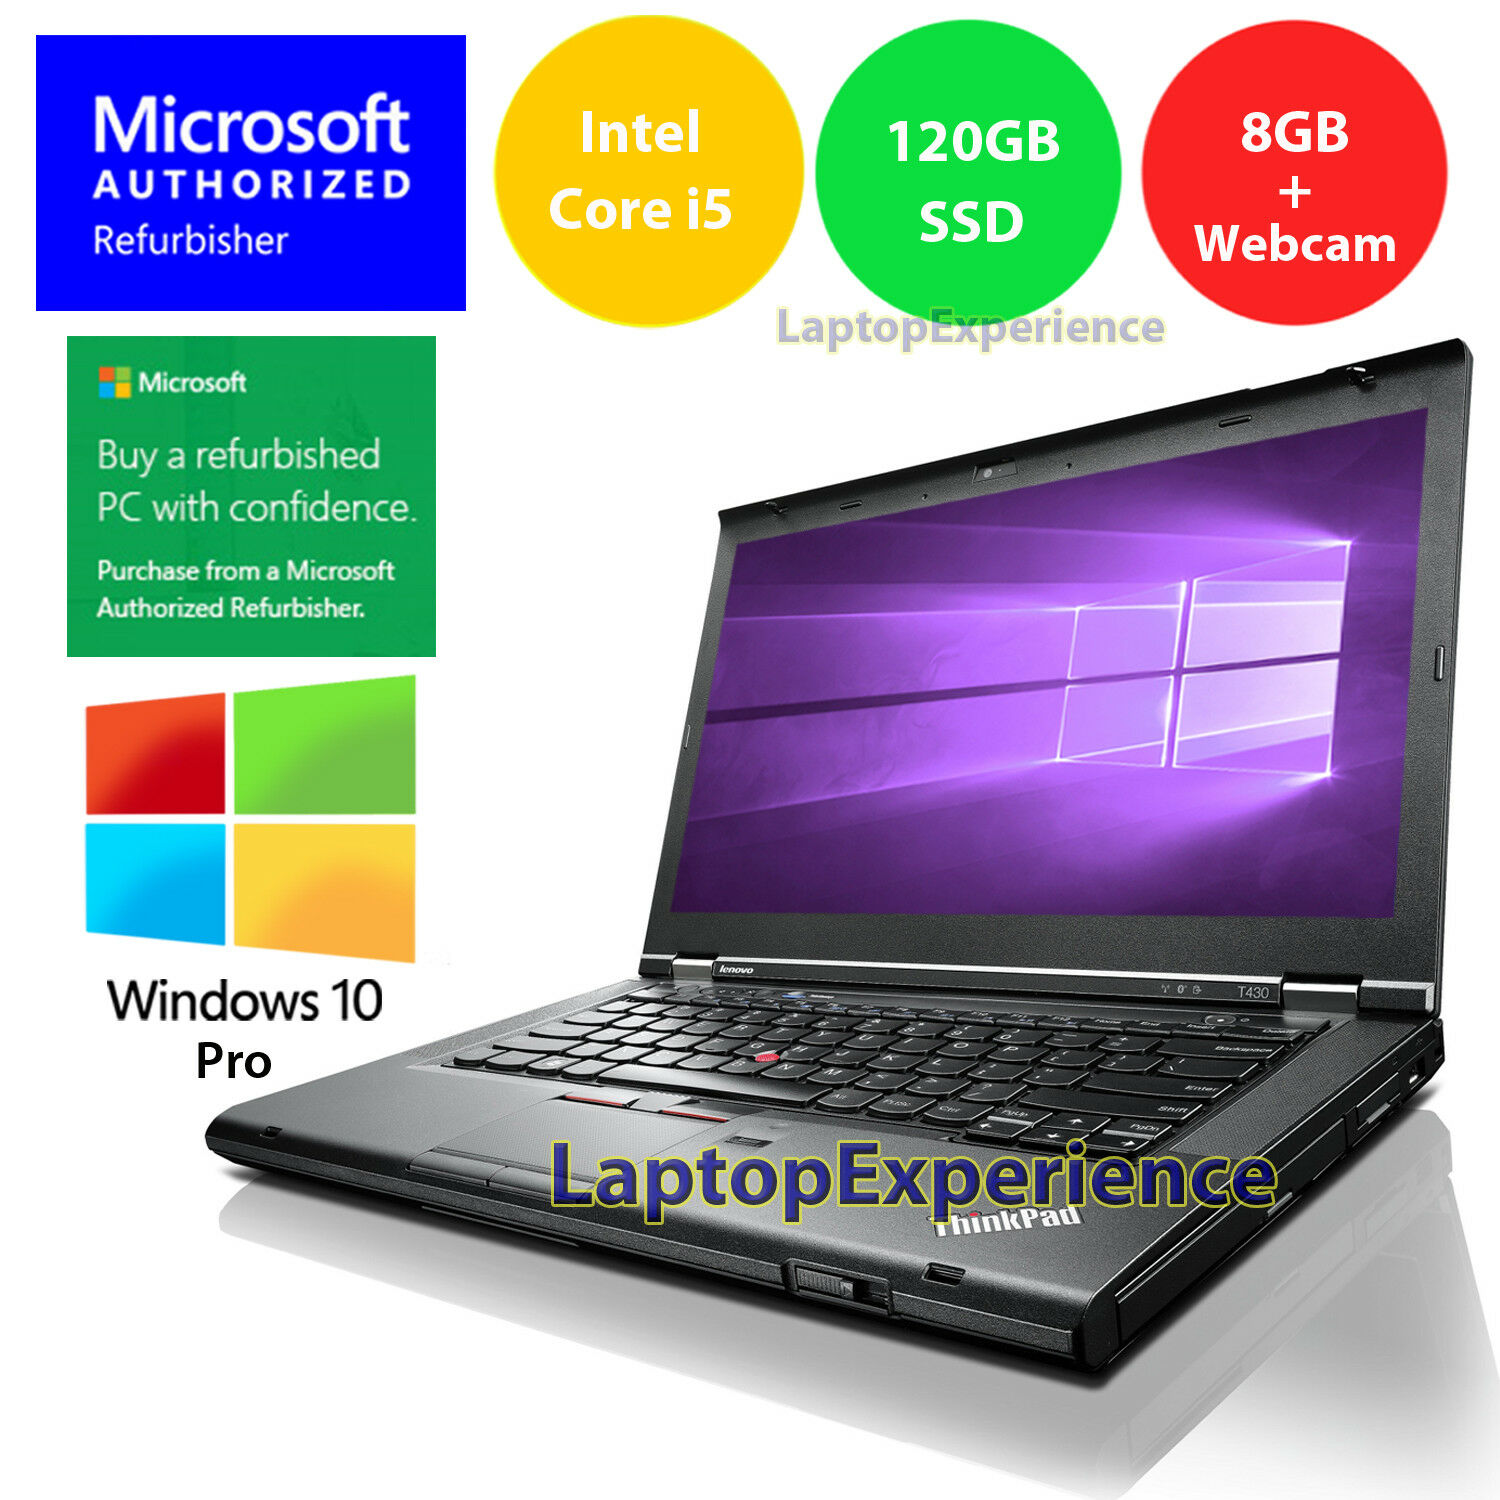 Laptop Windows - LENOVO LAPTOP T430 i5 2.5GHz 120GB SSD 8GB WINDOWS 10 PRO WEBCAM WiFi NOTEBOOK